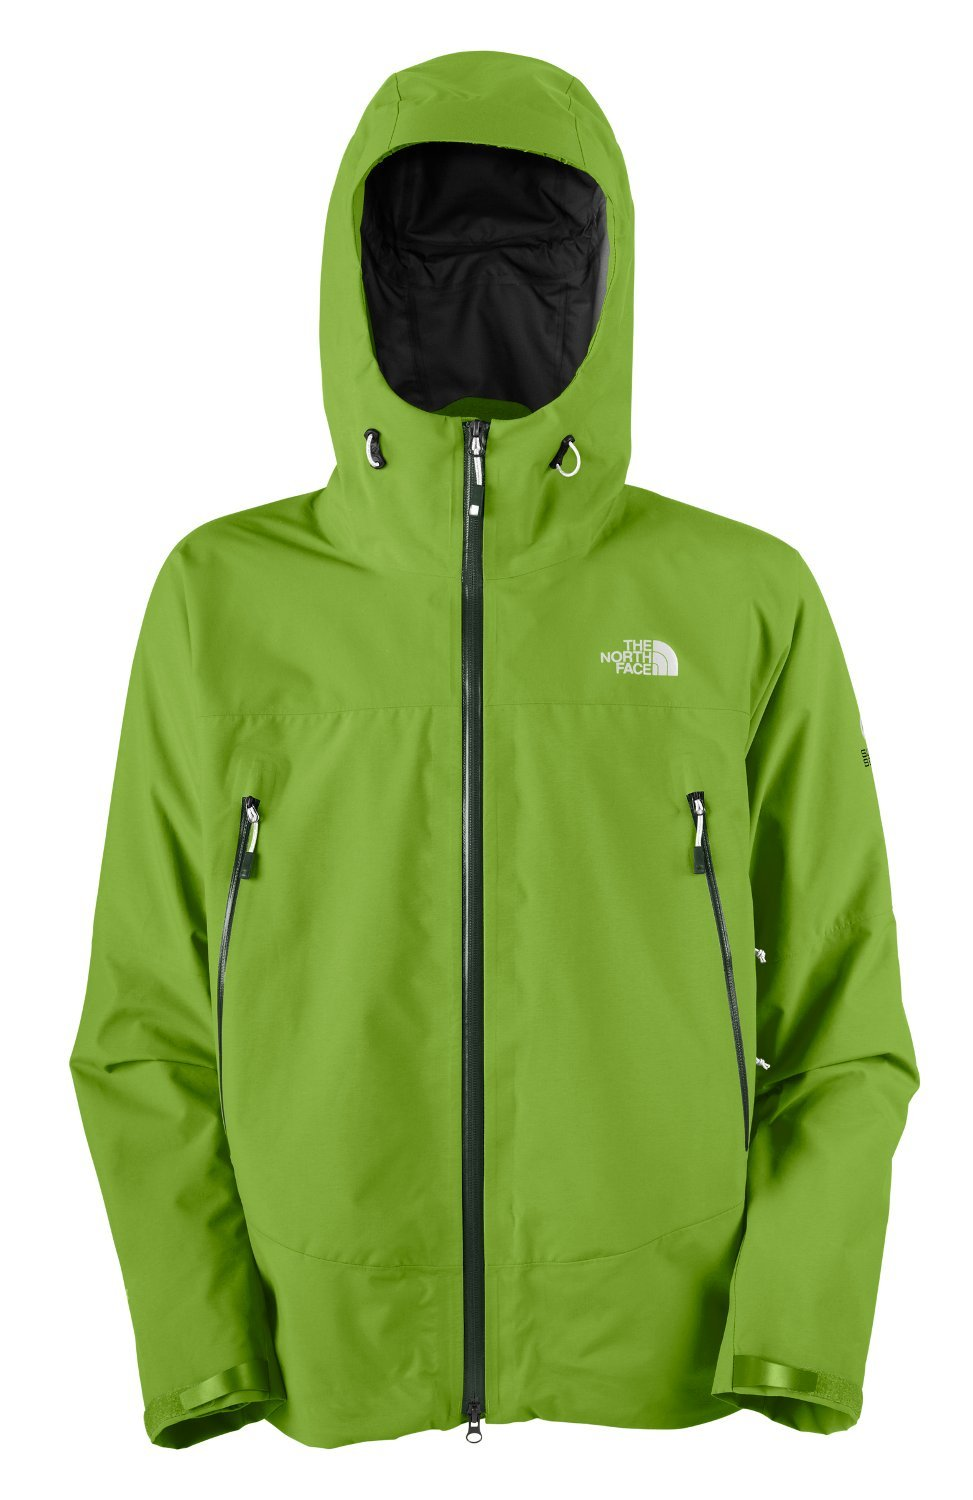 a388585d3 THE NORTH FACE Point Five Jacket - Scottish Moss Green Medium ...